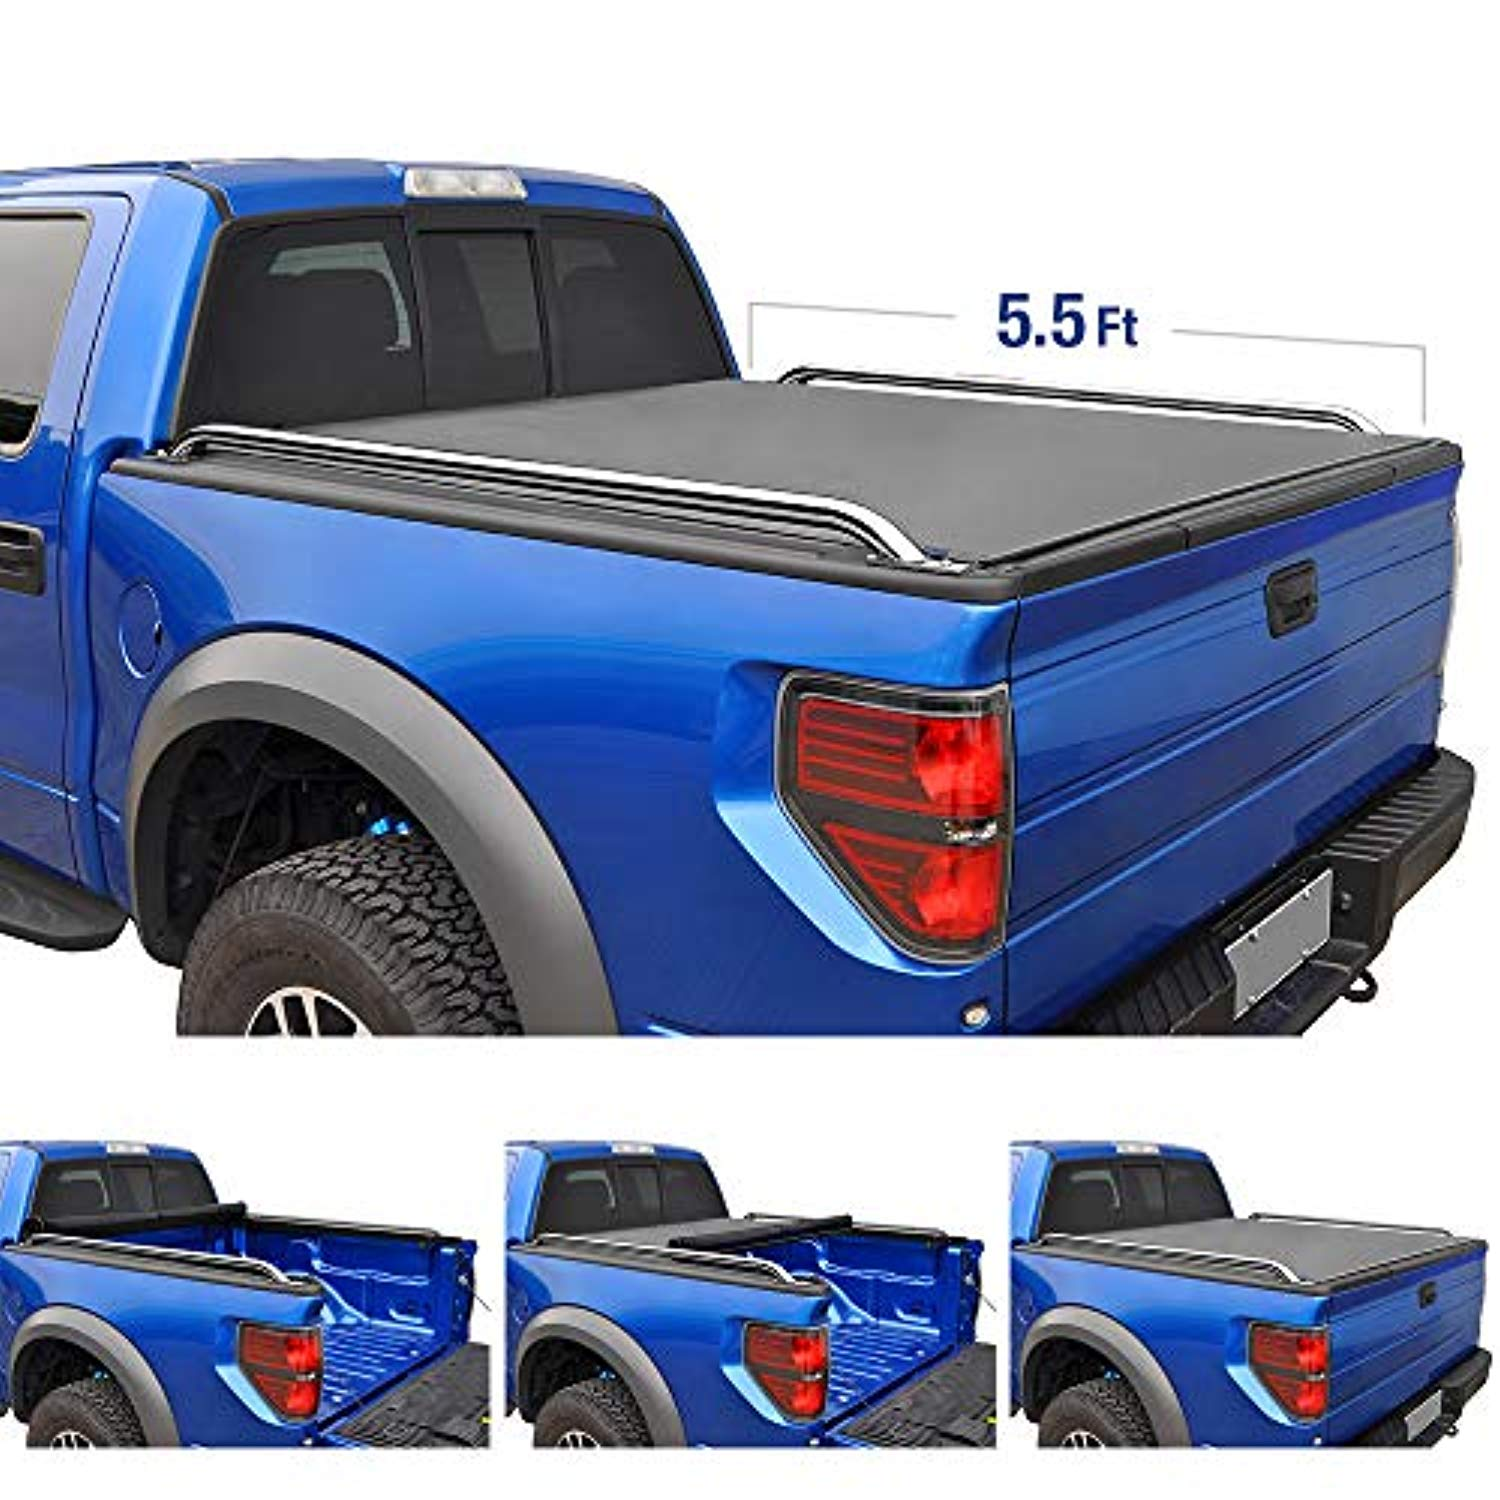 RoLock Low Profile Roll-Up Truck Bed Tonneau Cover 2004-2015 Nissan Titan | Fleetside 5.5' Bed | For models with or without the Utili-track System